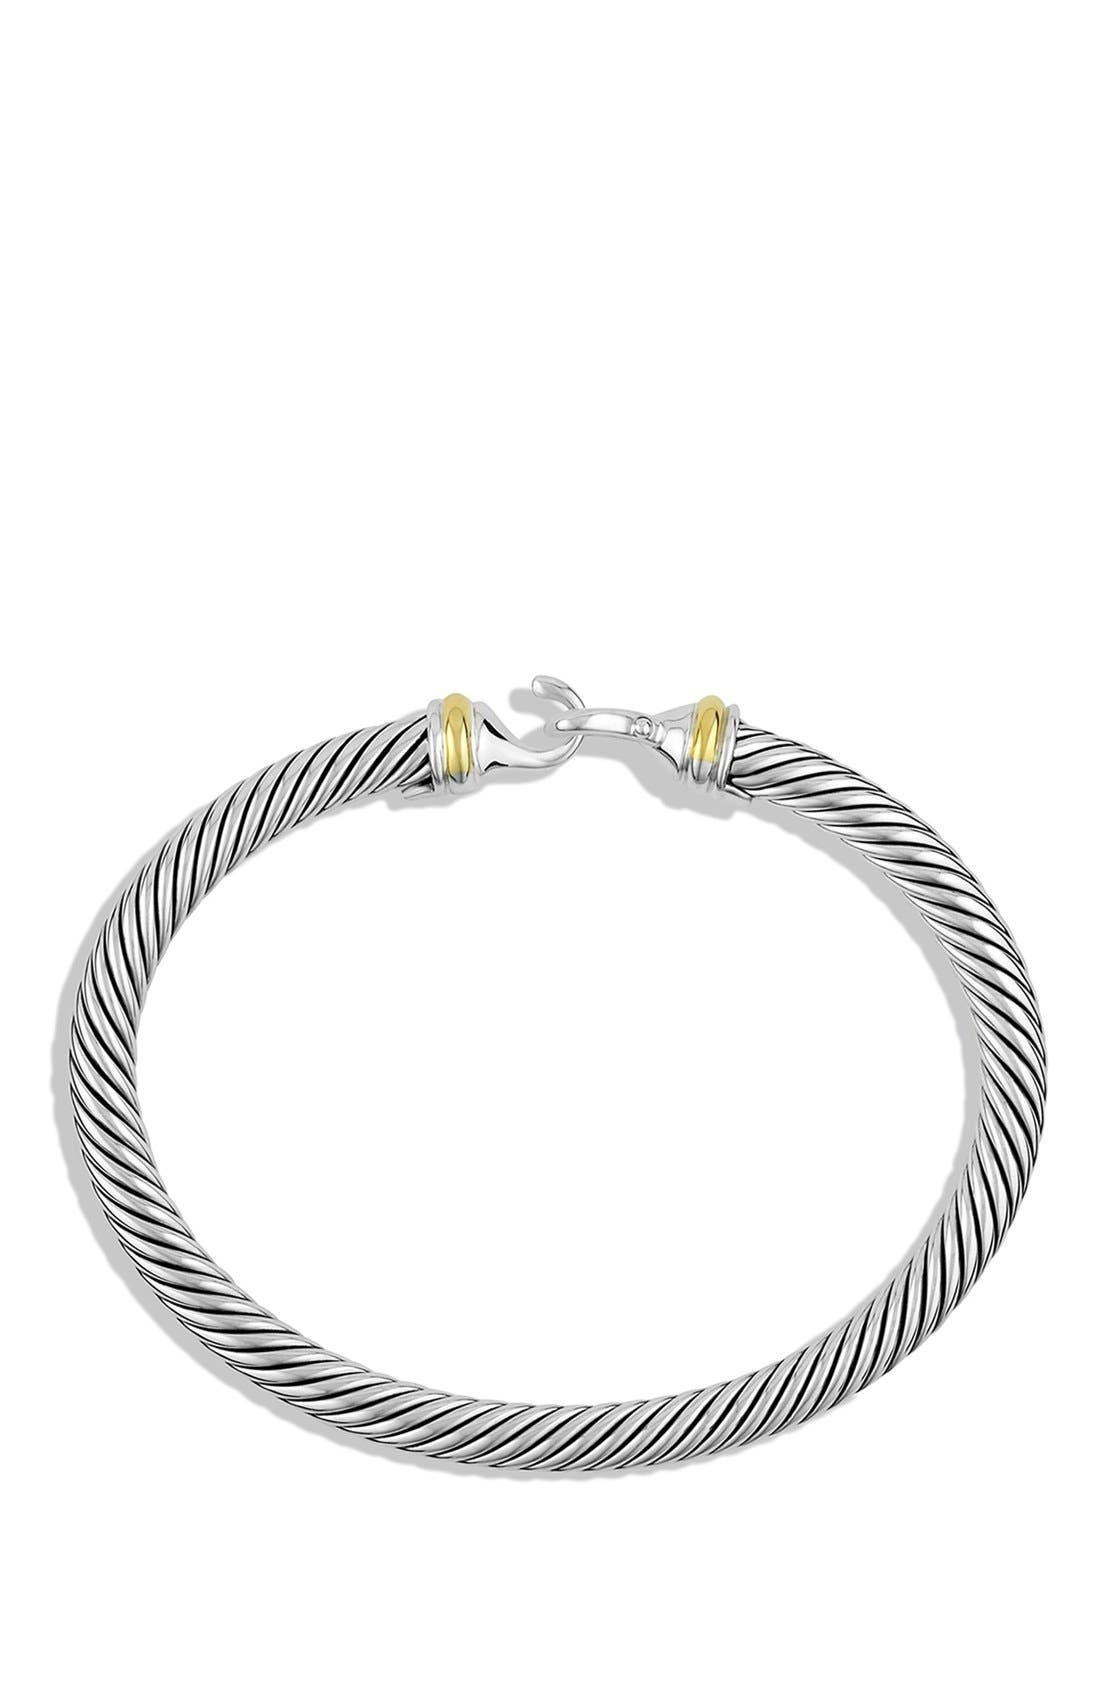 Cable Classic Buckle Bracelet with 18K Gold, 5mm,                             Alternate thumbnail 2, color,                             Two Tone